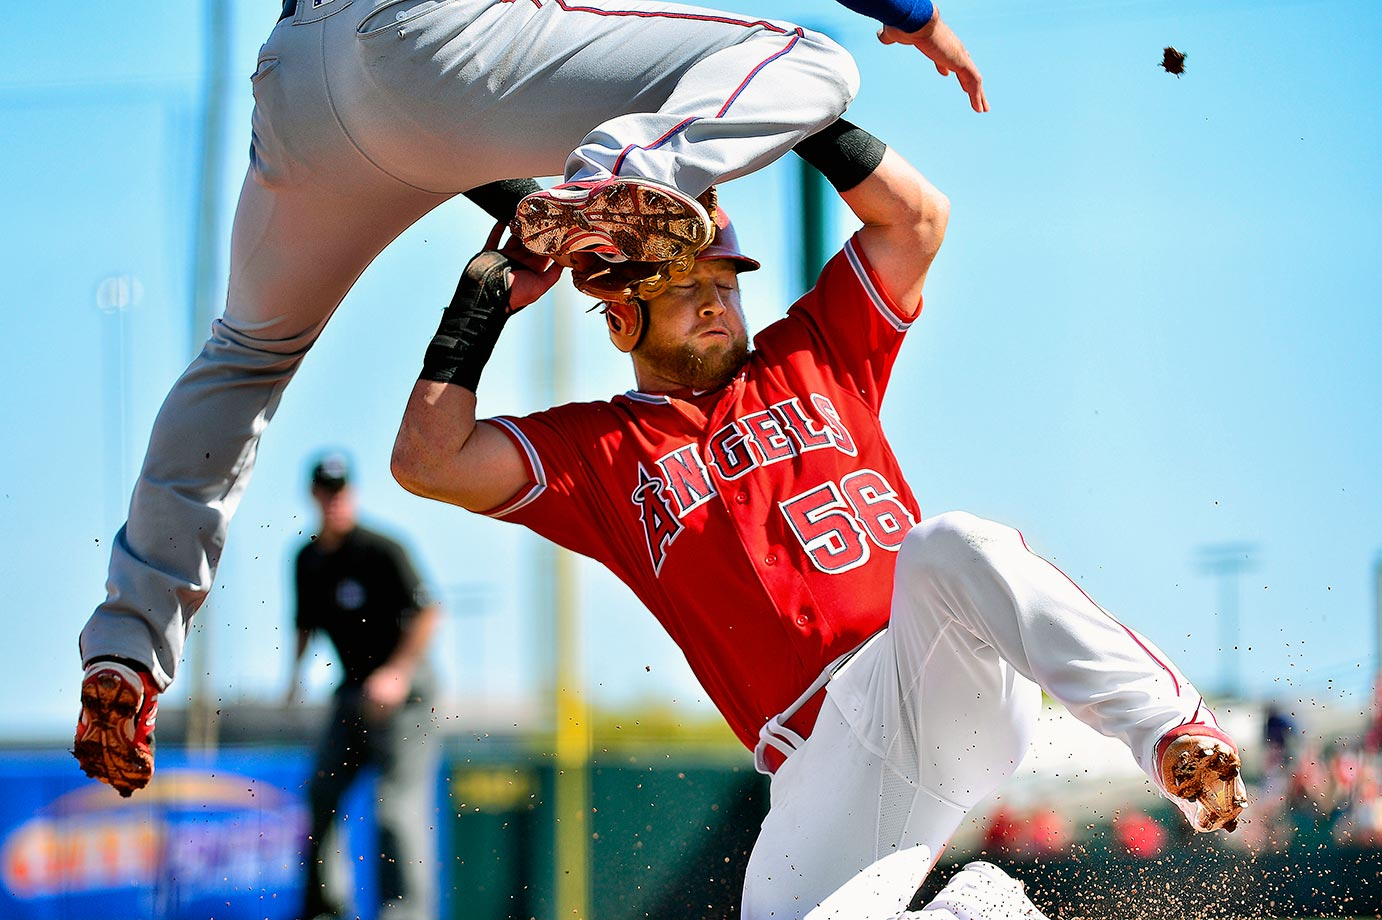 Los Angeles Angels baserunner Kole Calhoun safely slides under Texas Rangers third baseman Joey Gallo in the second inning of their spring training game in Tempe, Ariz.